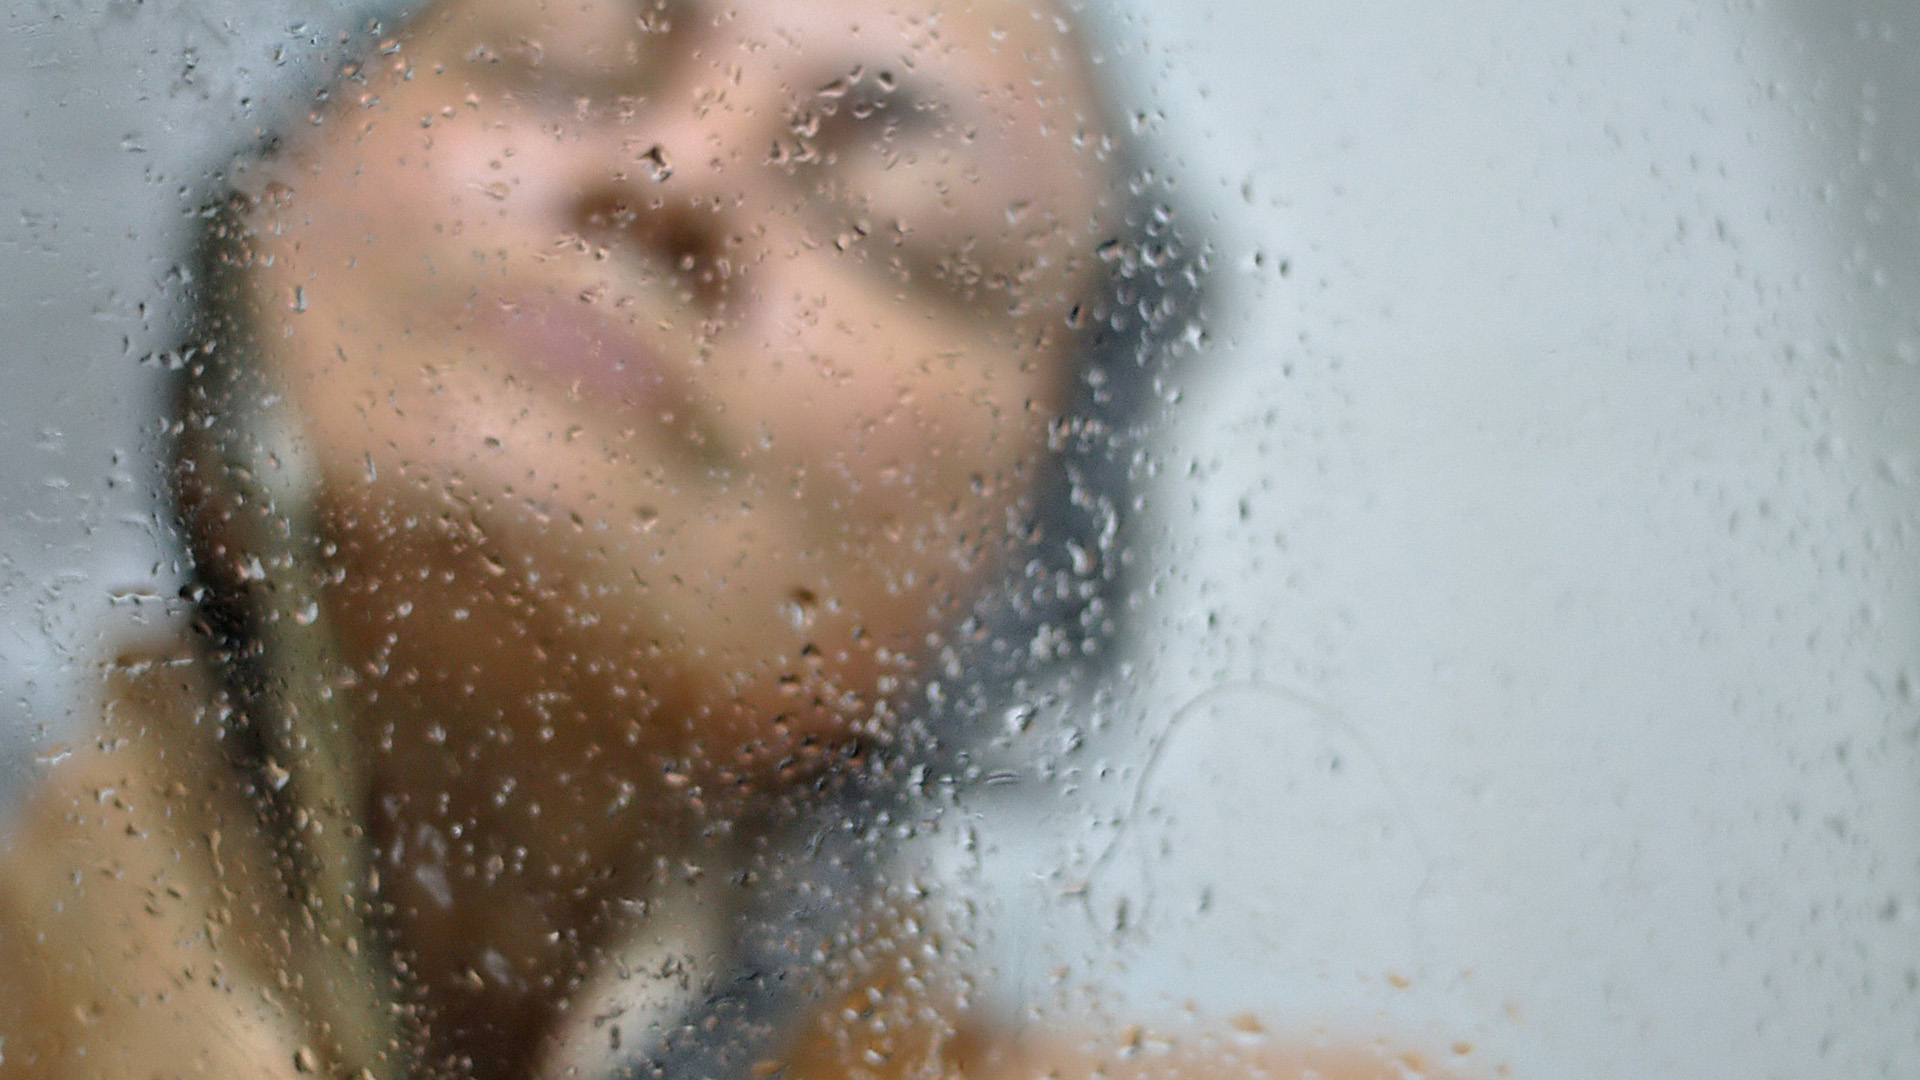 showering every day is harmful